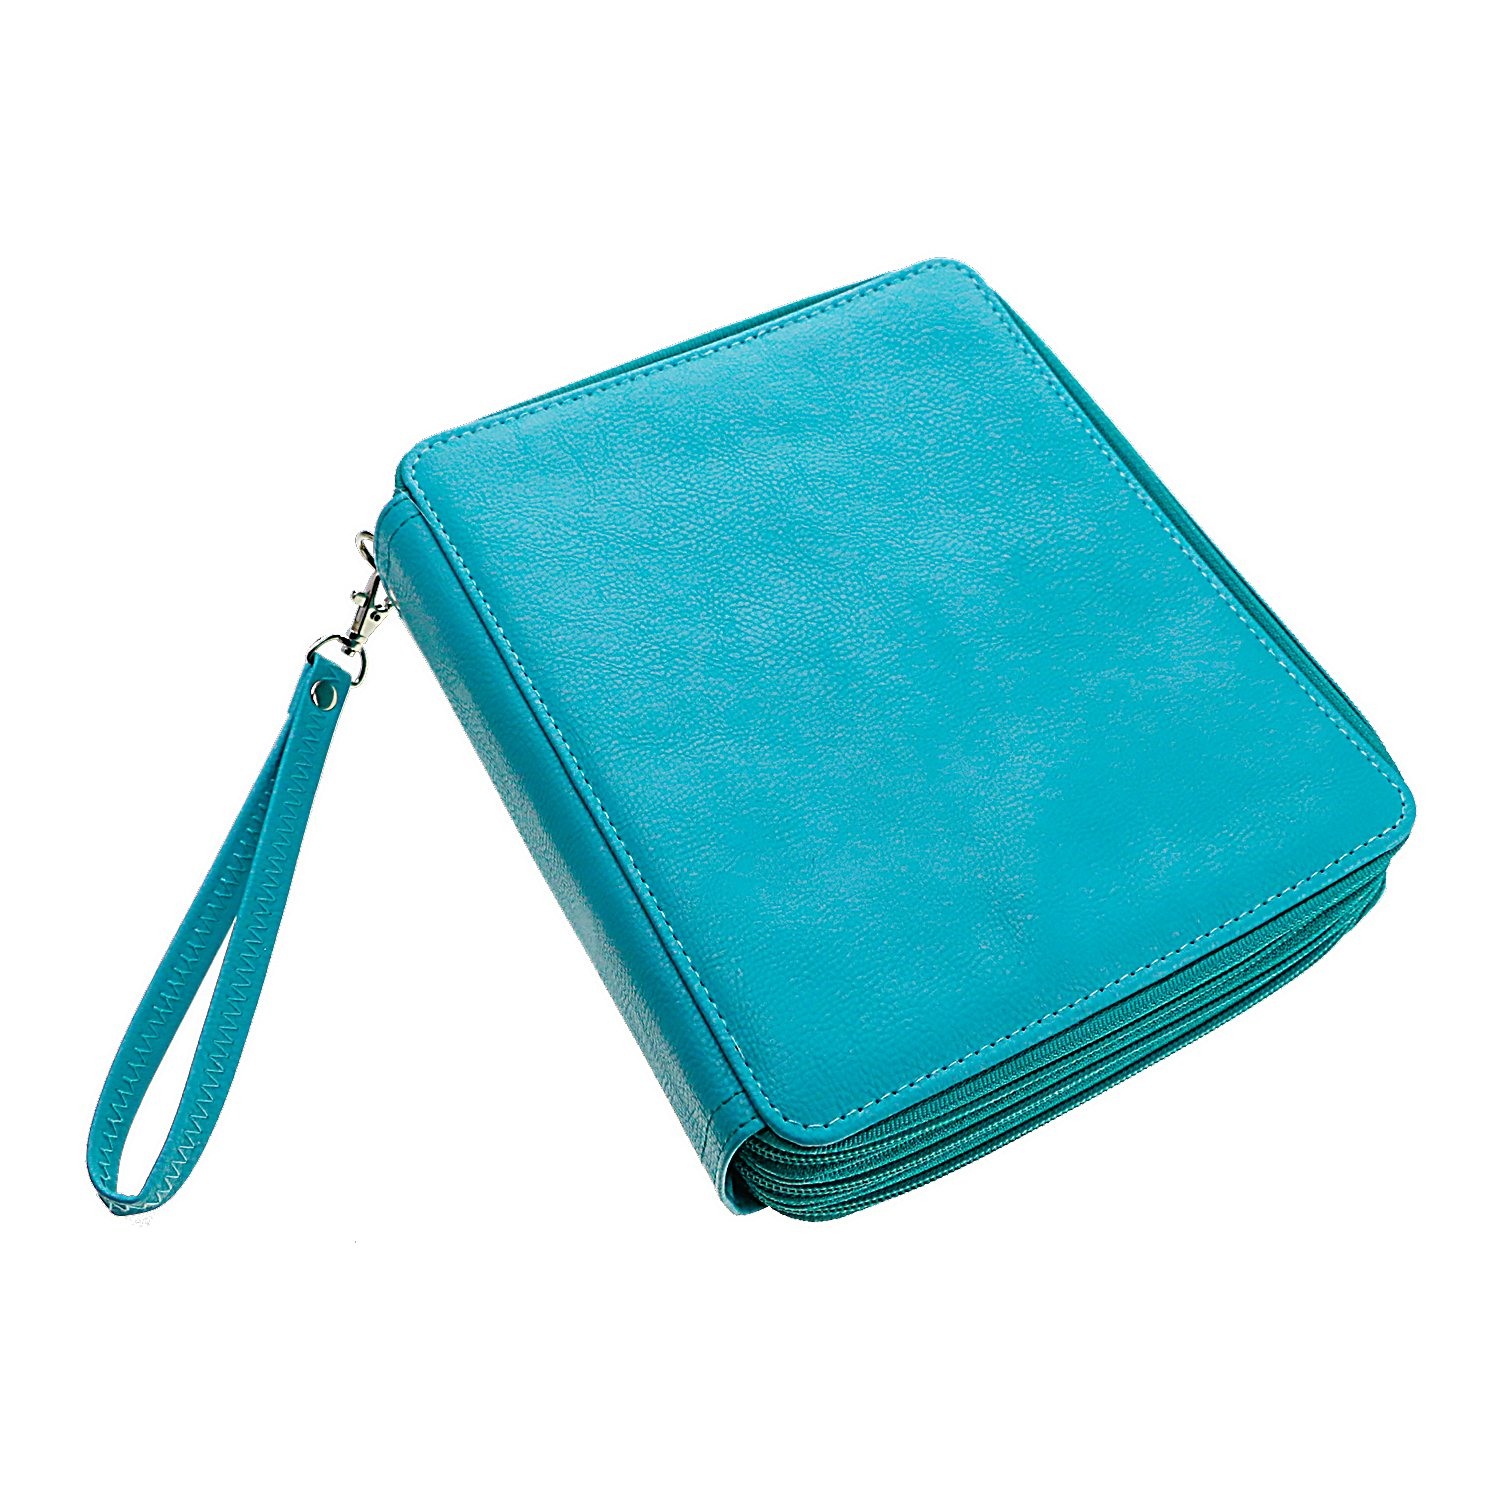 120 Slots PU Leather Pencil Case Travel Portable Southsun Colored Pencil Holder Pen Bag Pouch for Artist Students (Turquoise)